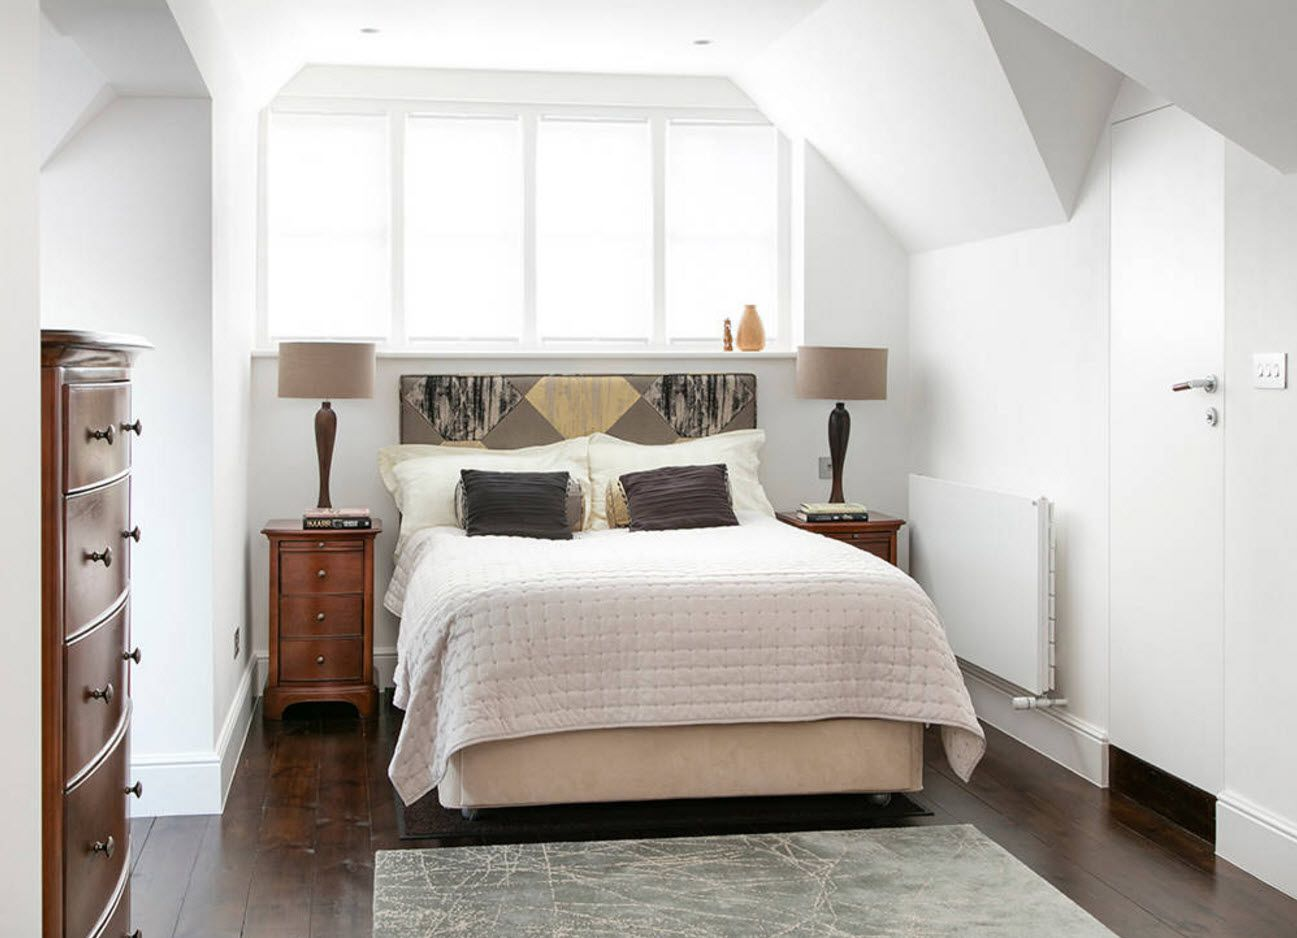 Pastel tones of wall decoration in the bedroom